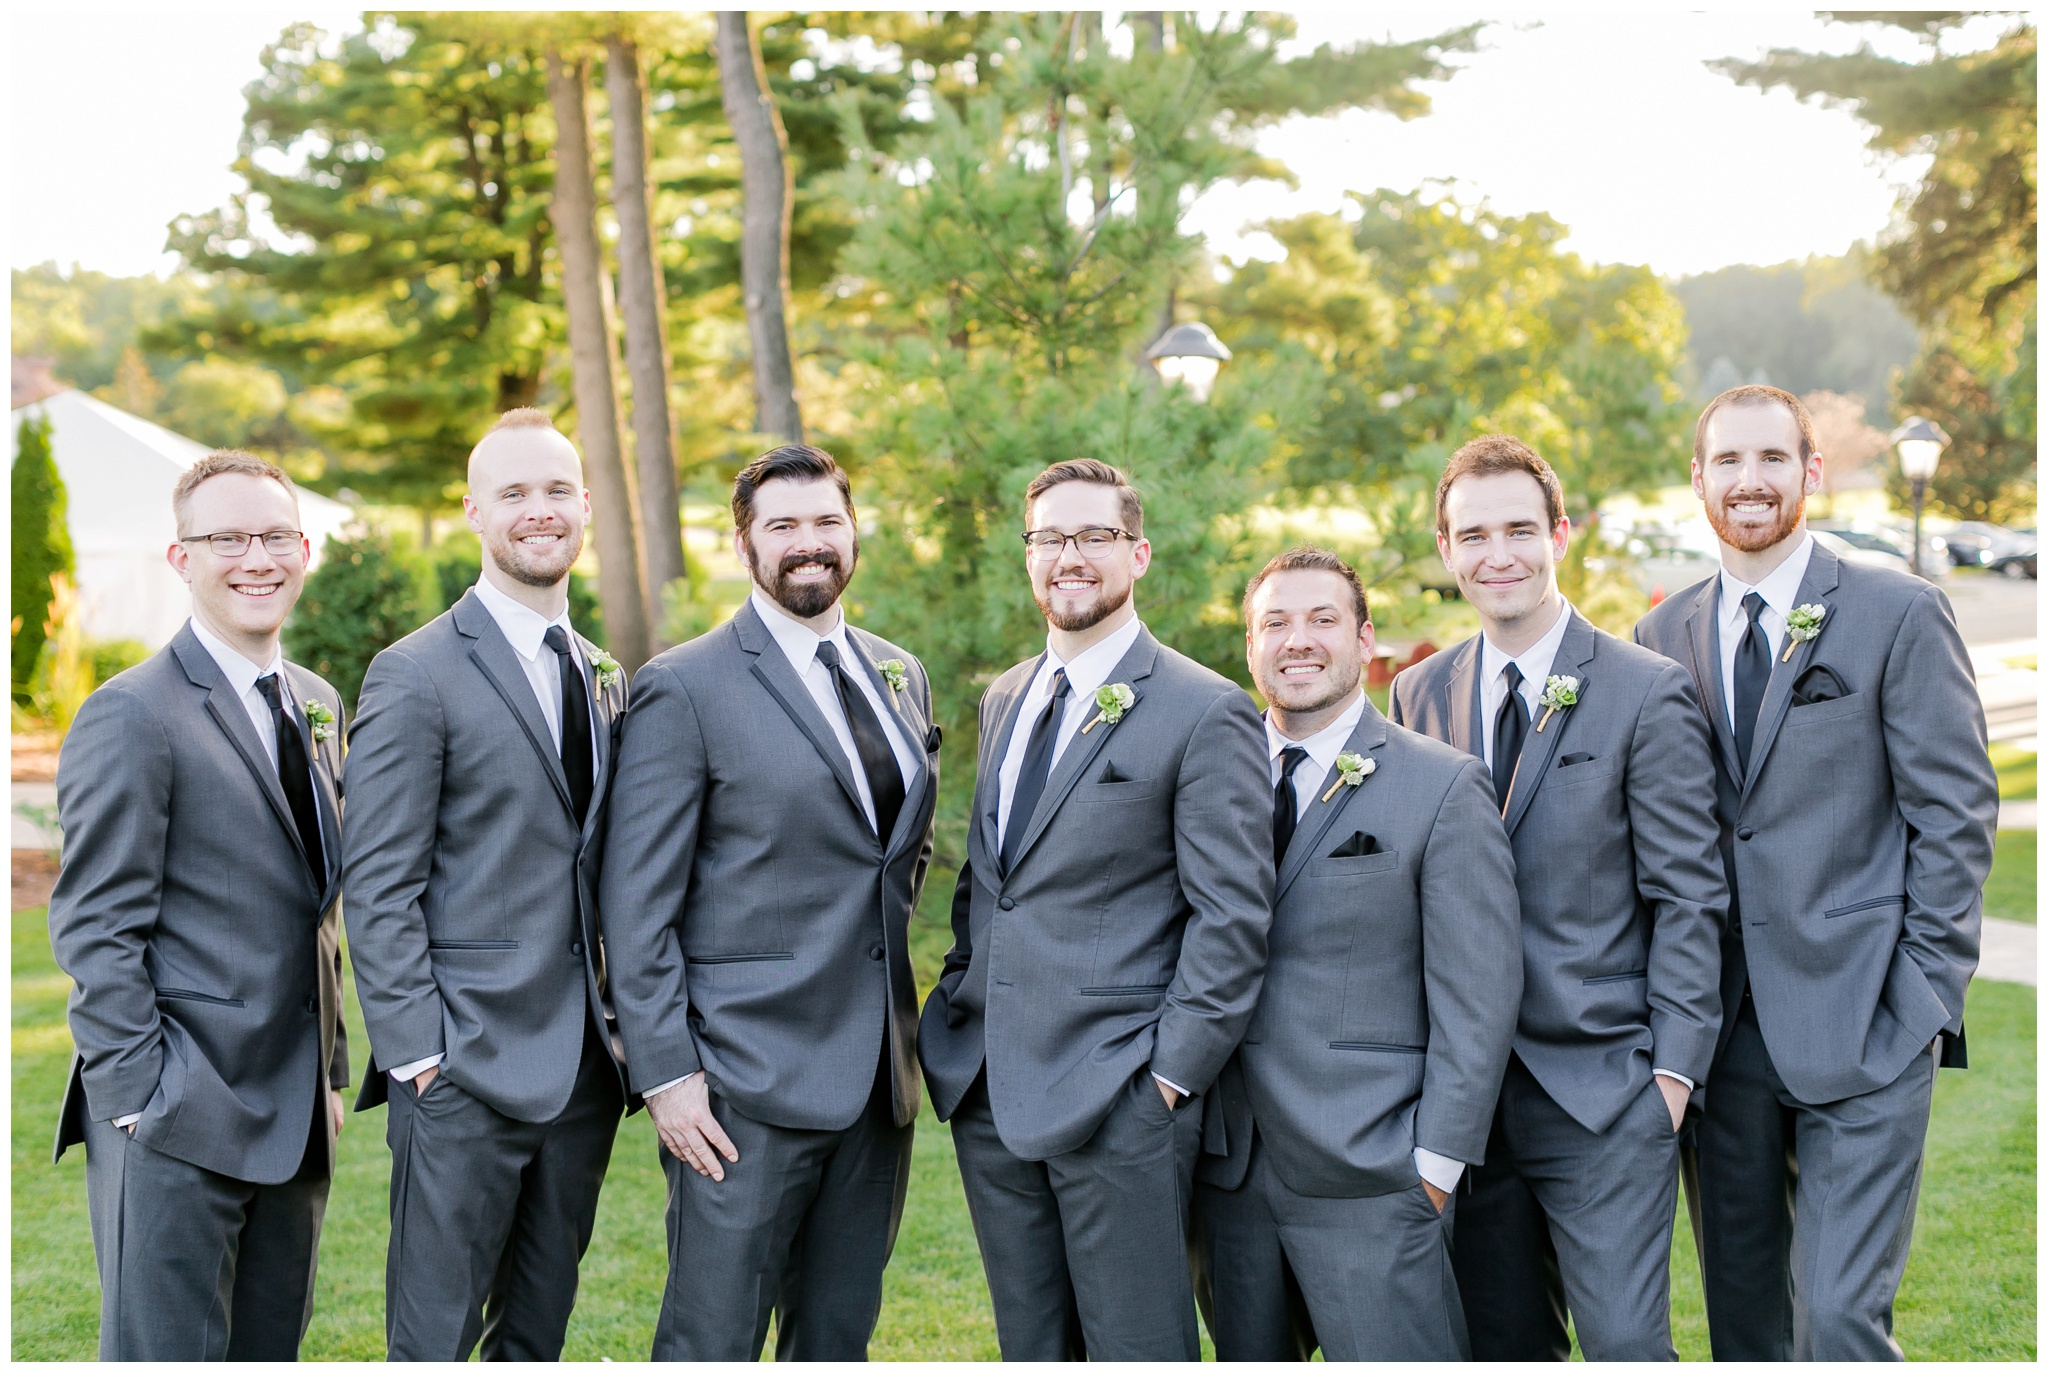 bishops_bay_country_club_wedding_middleton_wisconsin_caynay_photo_4721.jpg